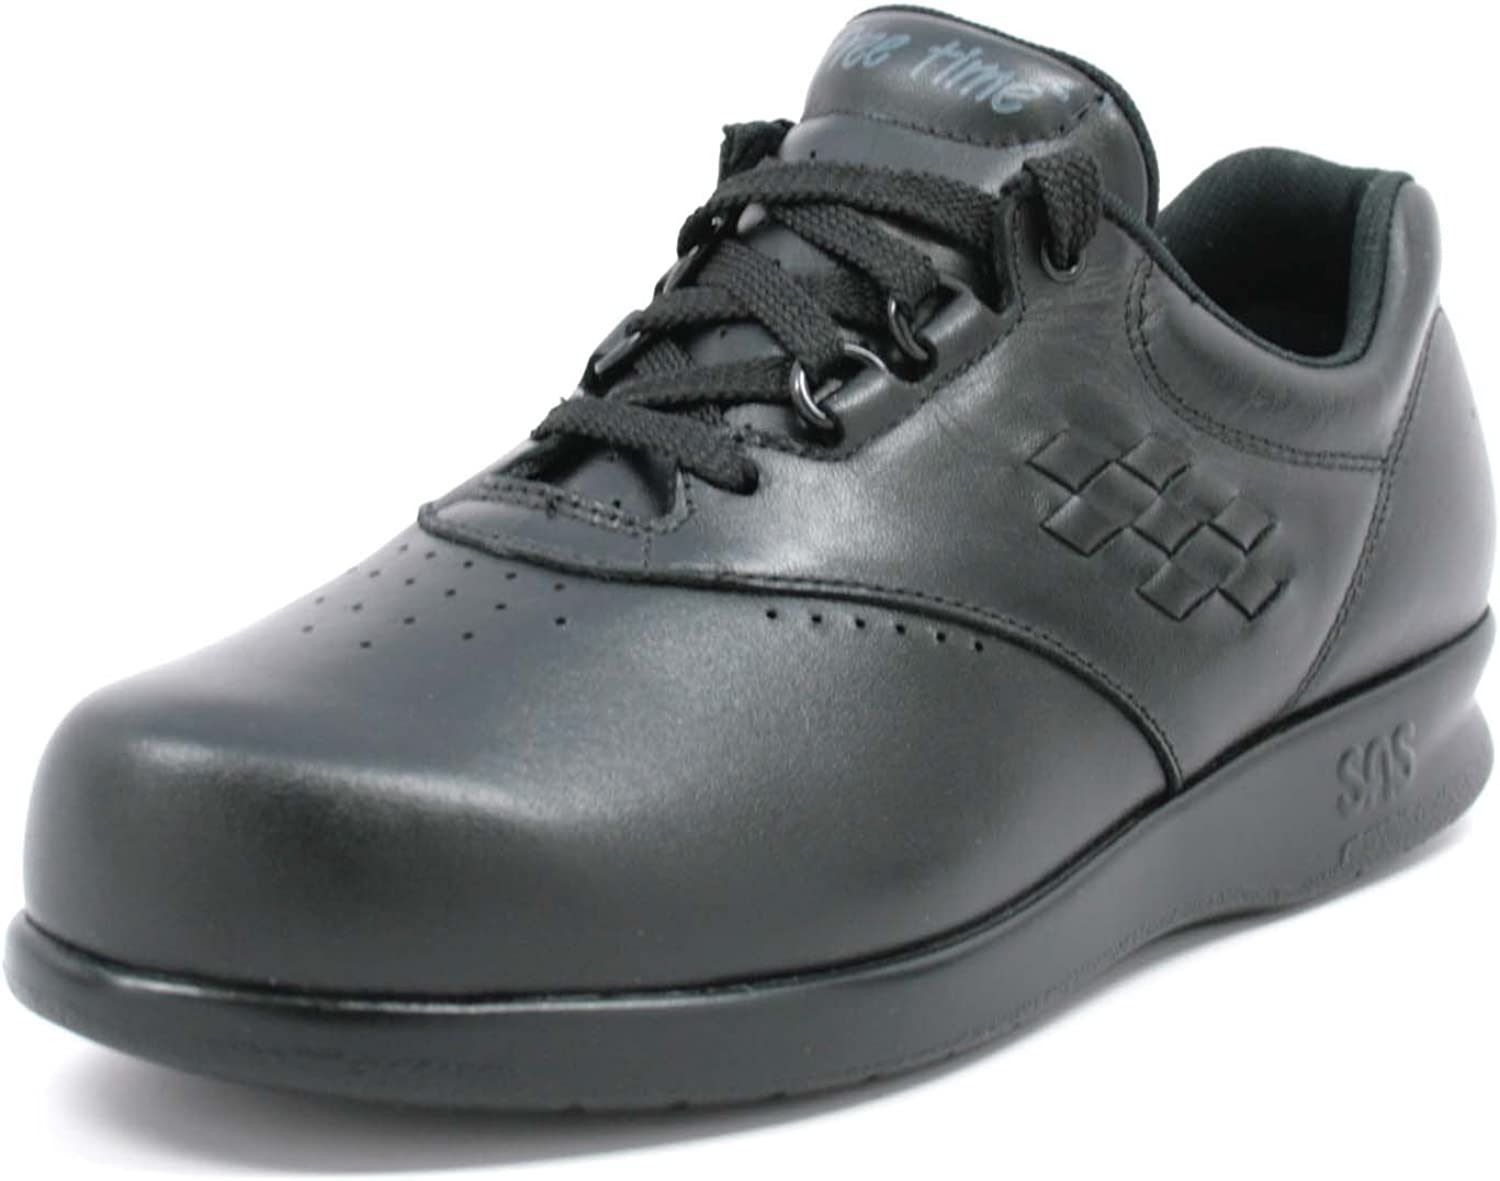 SAS Free shipping on posting reviews Women's Freetime Safety and trust Sneaker